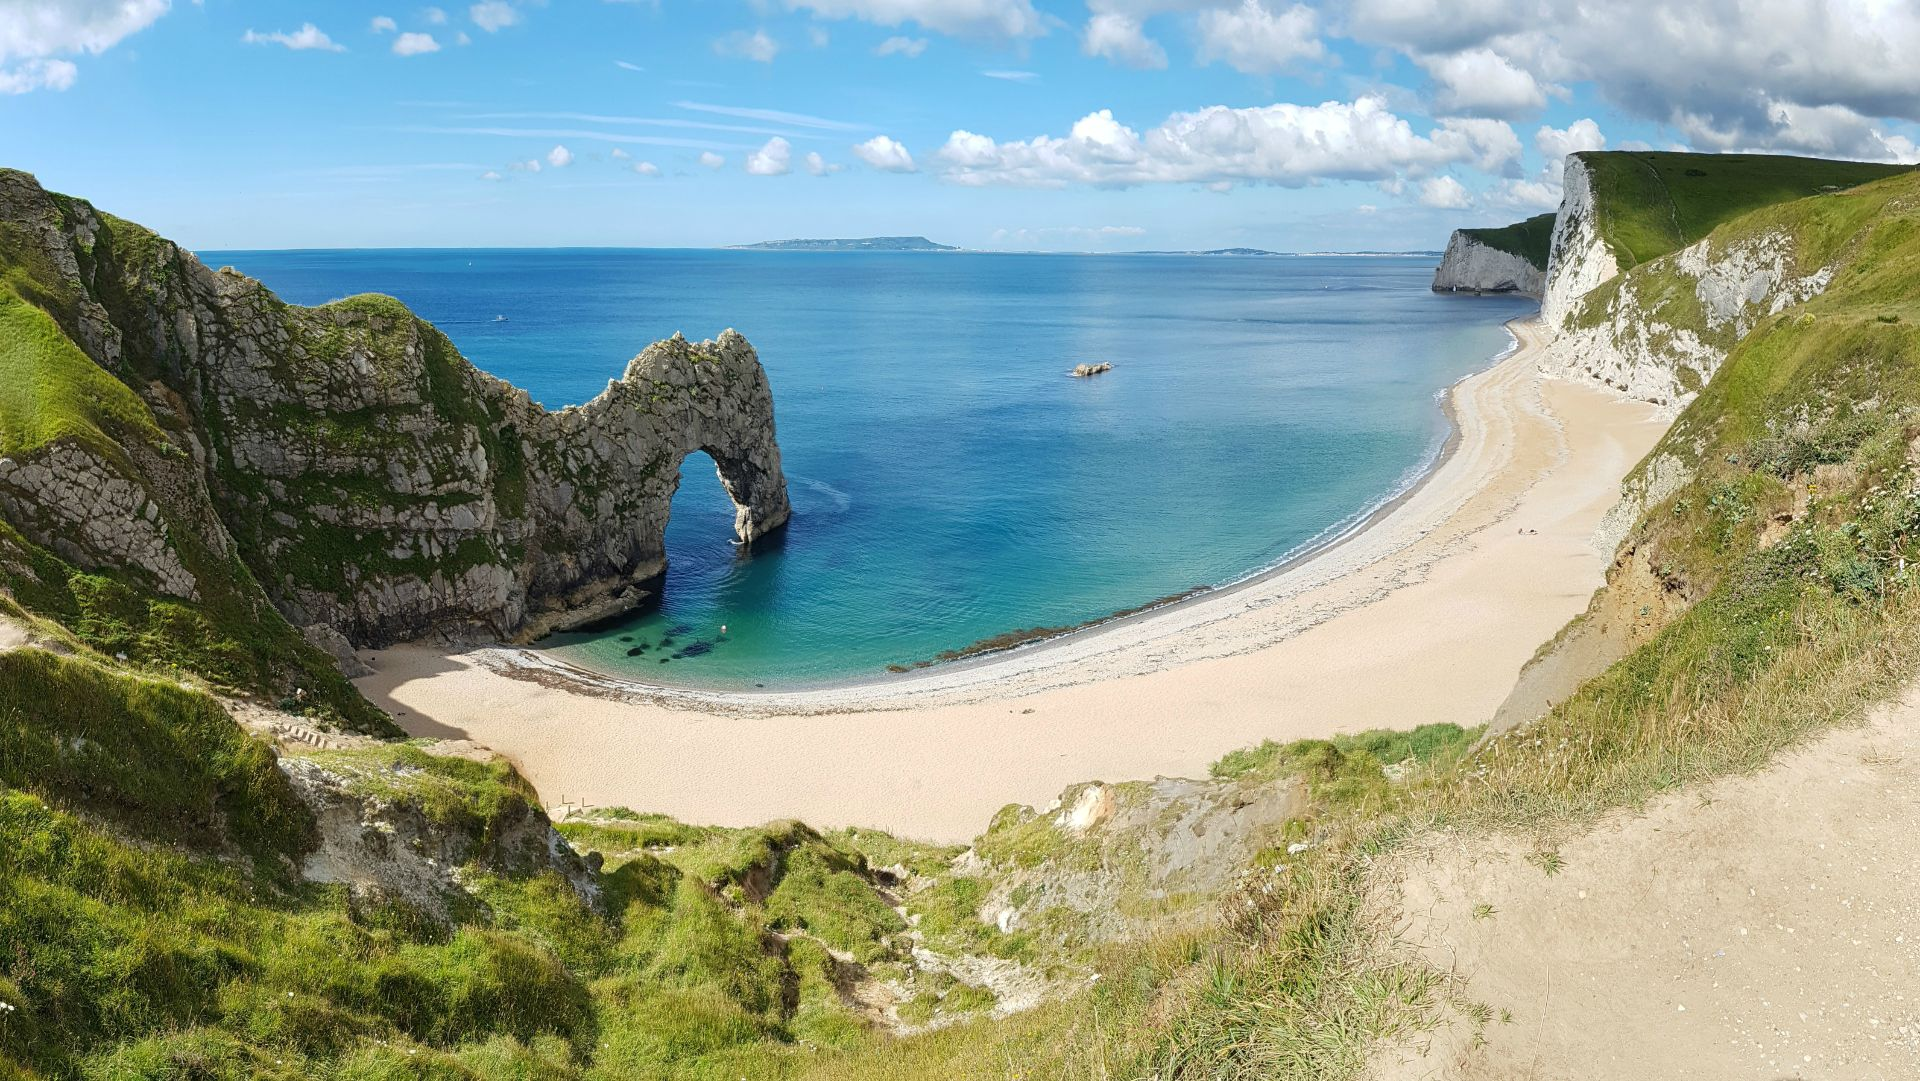 Dorset Coastal Cottages has been acquired by The Travel Chapter